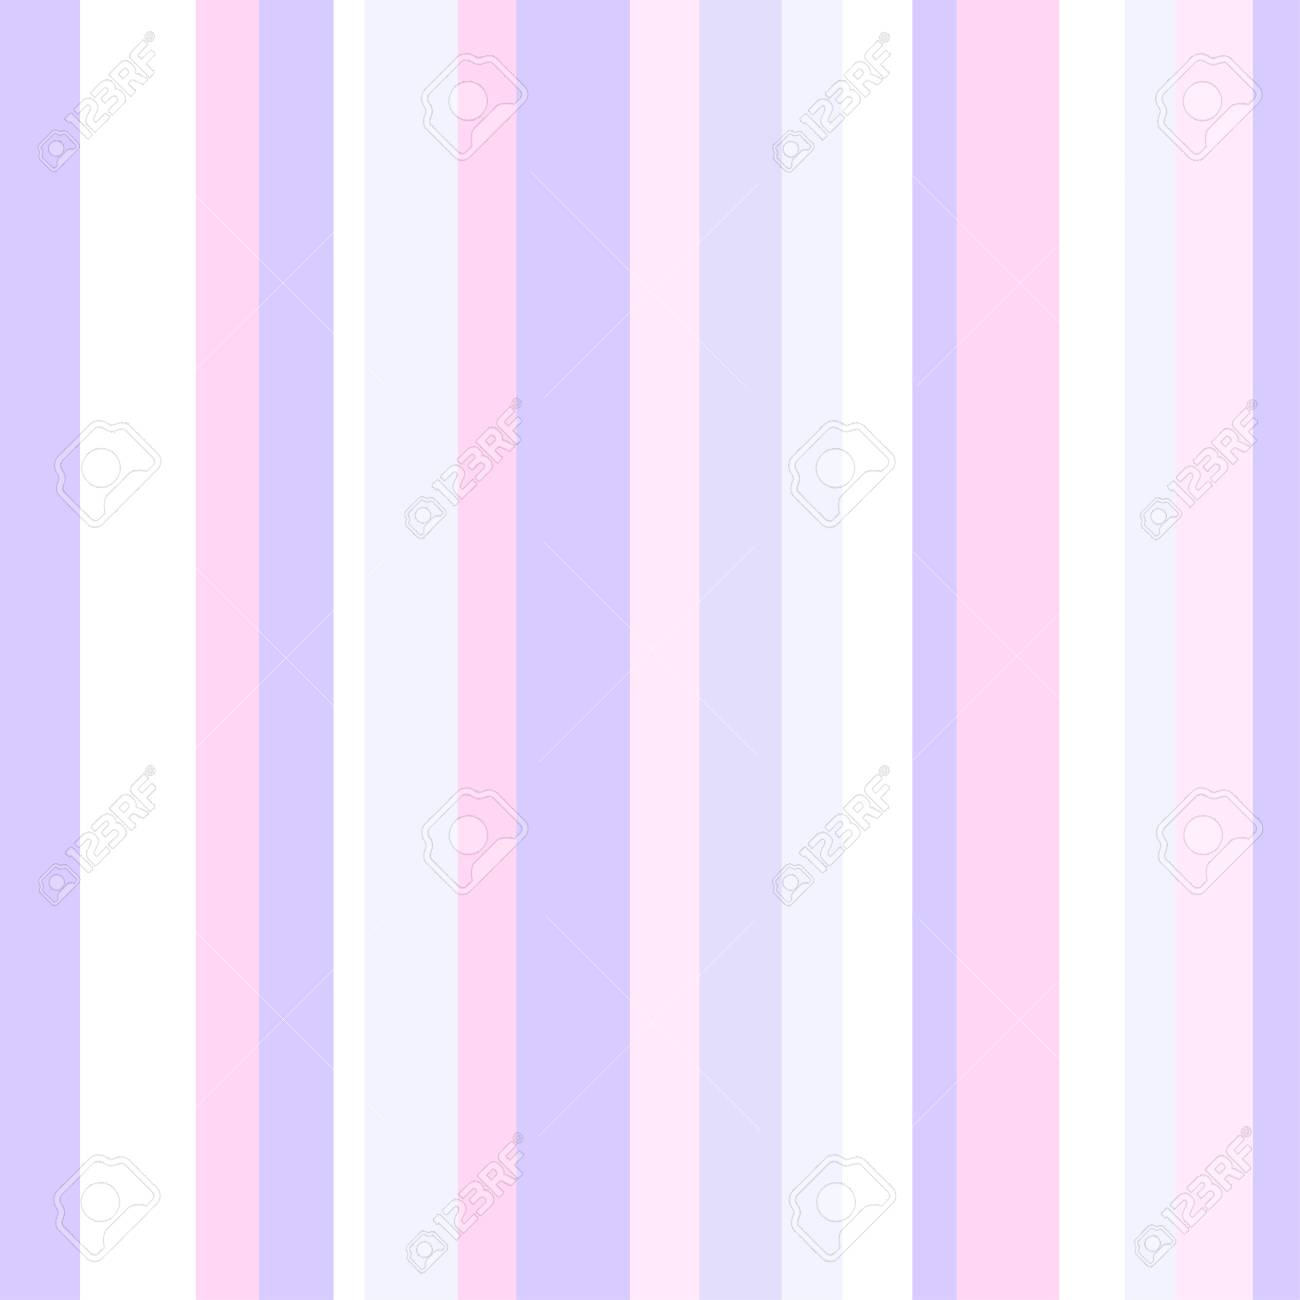 striped pattern with stylish and bright colors pink violet royalty free cliparts vectors and stock illustration image 83554925 striped pattern with stylish and bright colors pink violet